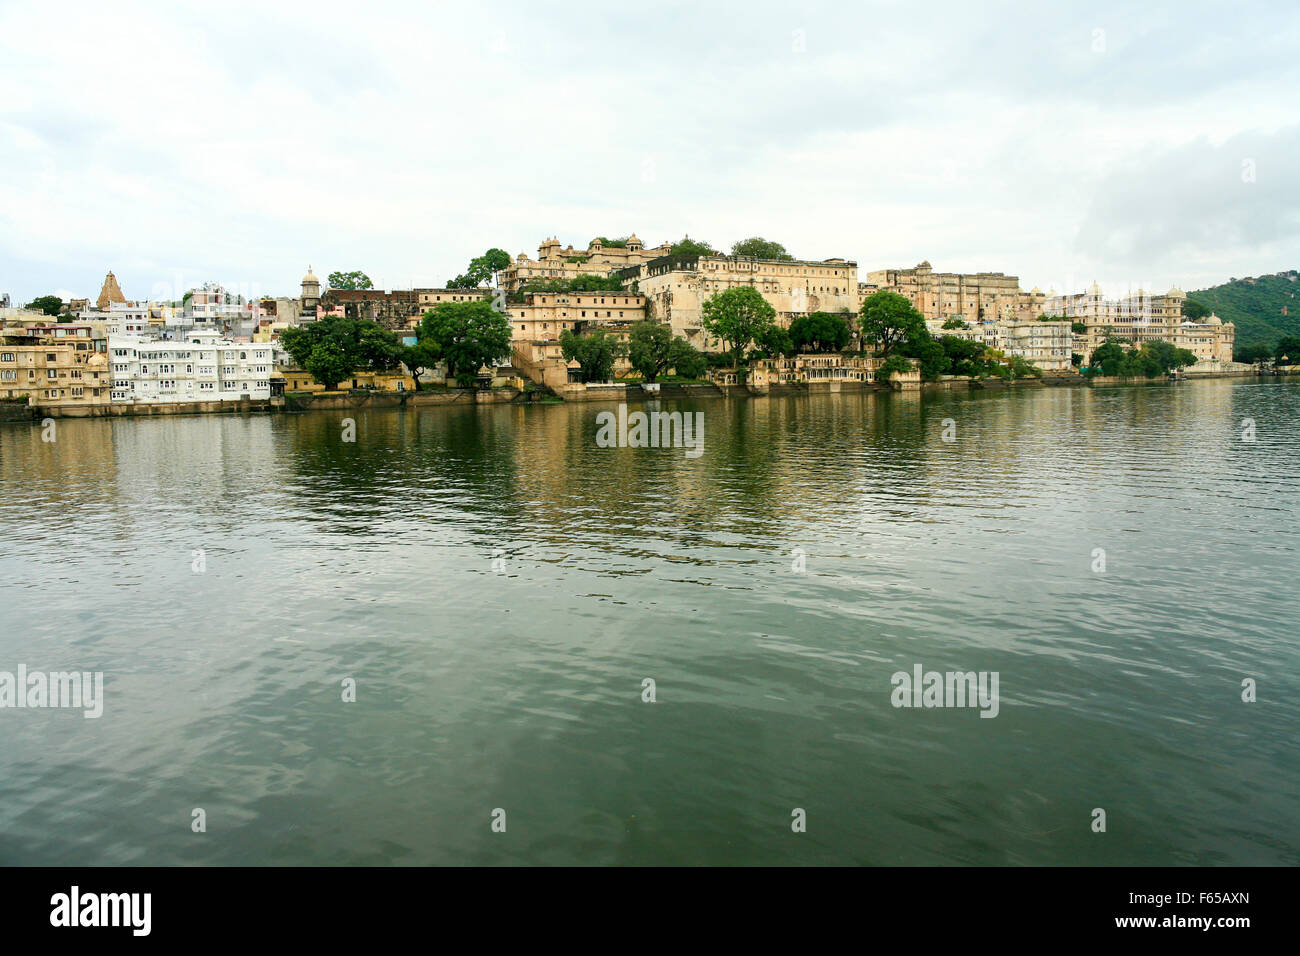 India, Rajasthan, Udaipur cityscape from Jag Mandir palace in lake Pichola Stock Photo